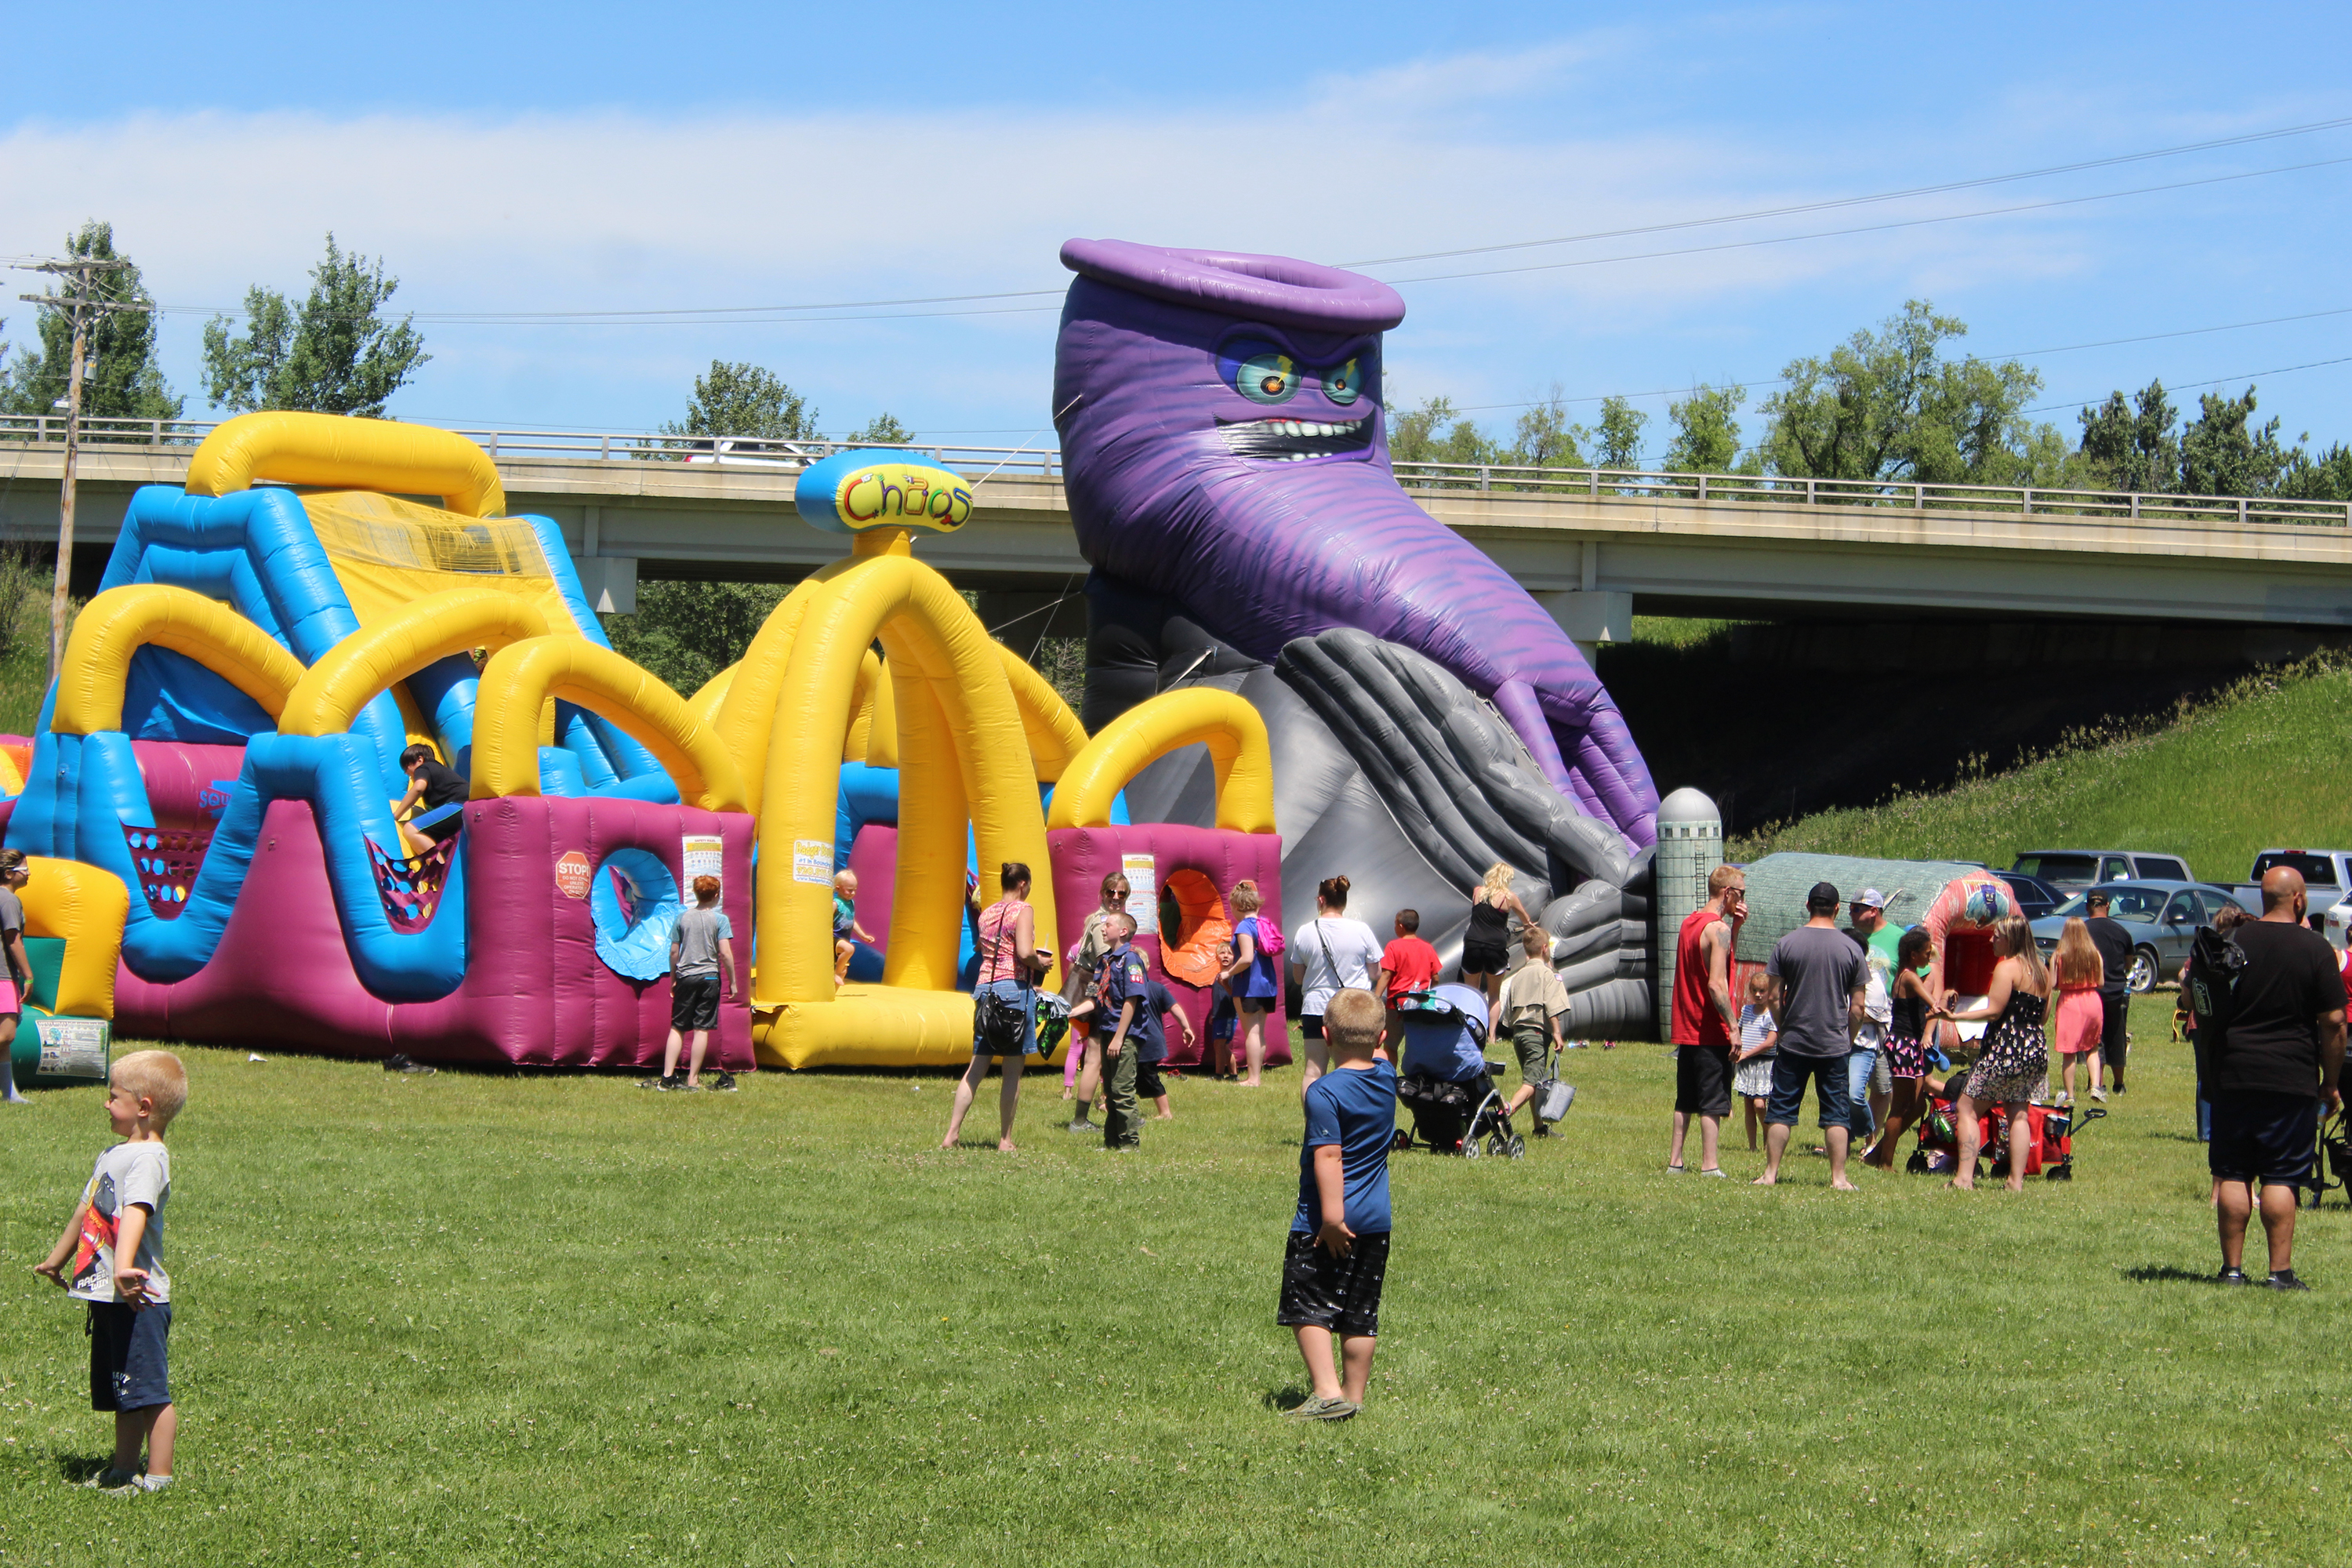 There were plenty of things, like bouncy houses, to keep children entertained during Wittenberg Community Days, held June 12-13 at Washington Park.(Lee Pulaski   NEW Media)